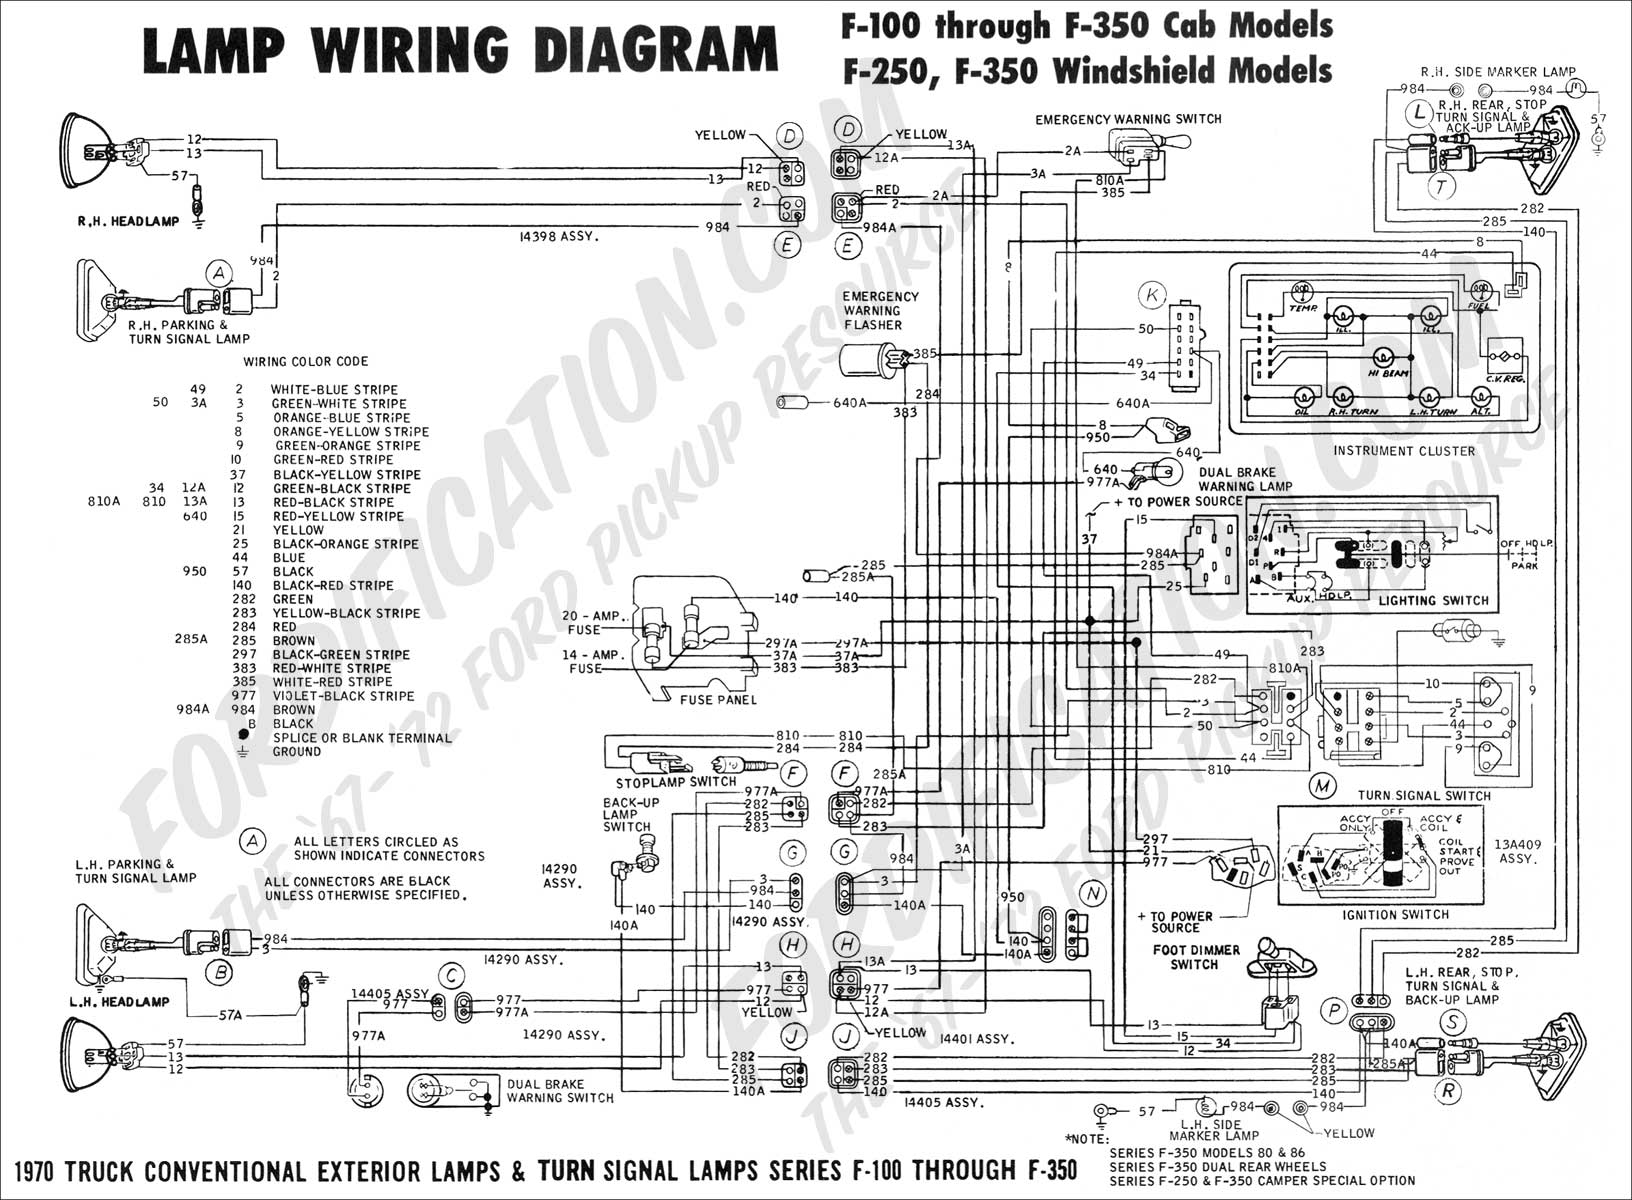 97 Dodge Ram 1500 Fuel Filter Location. Dodge. Wiring